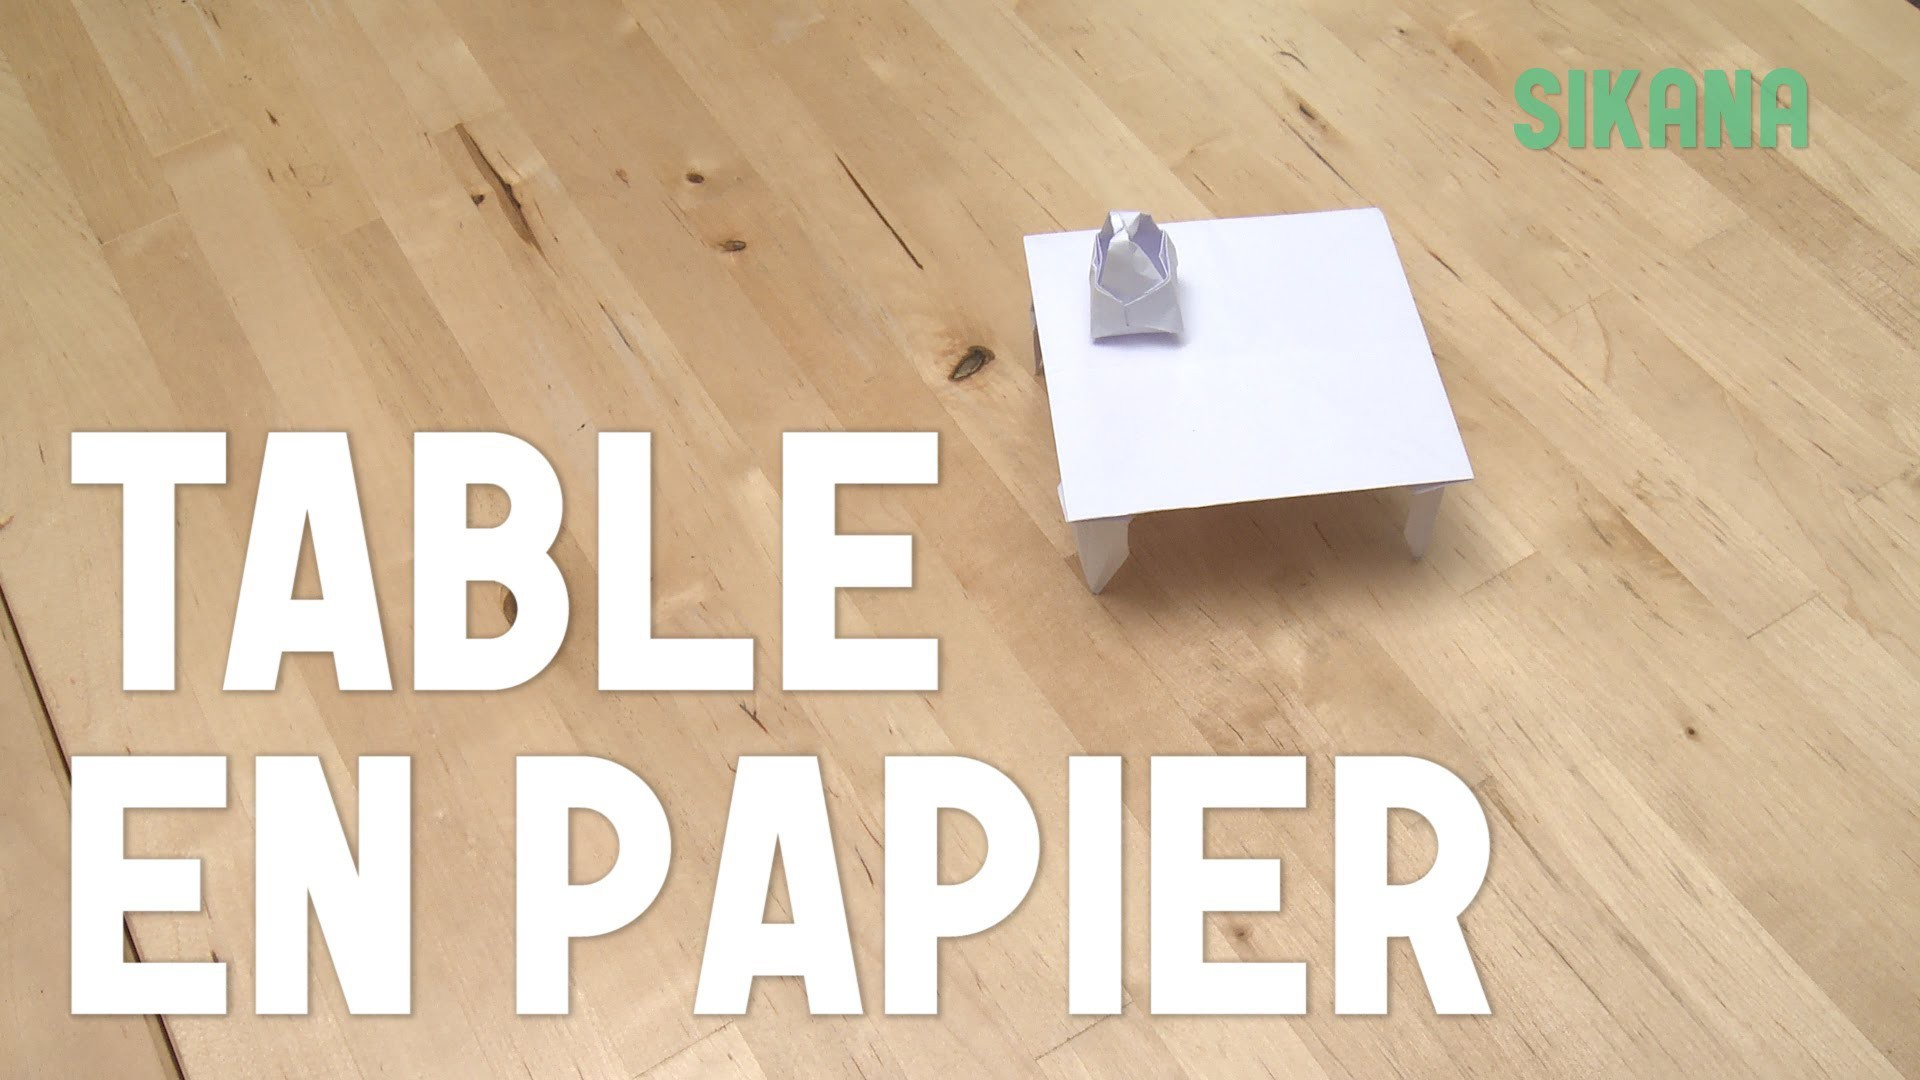 Origami : Faire une table en papier - HD